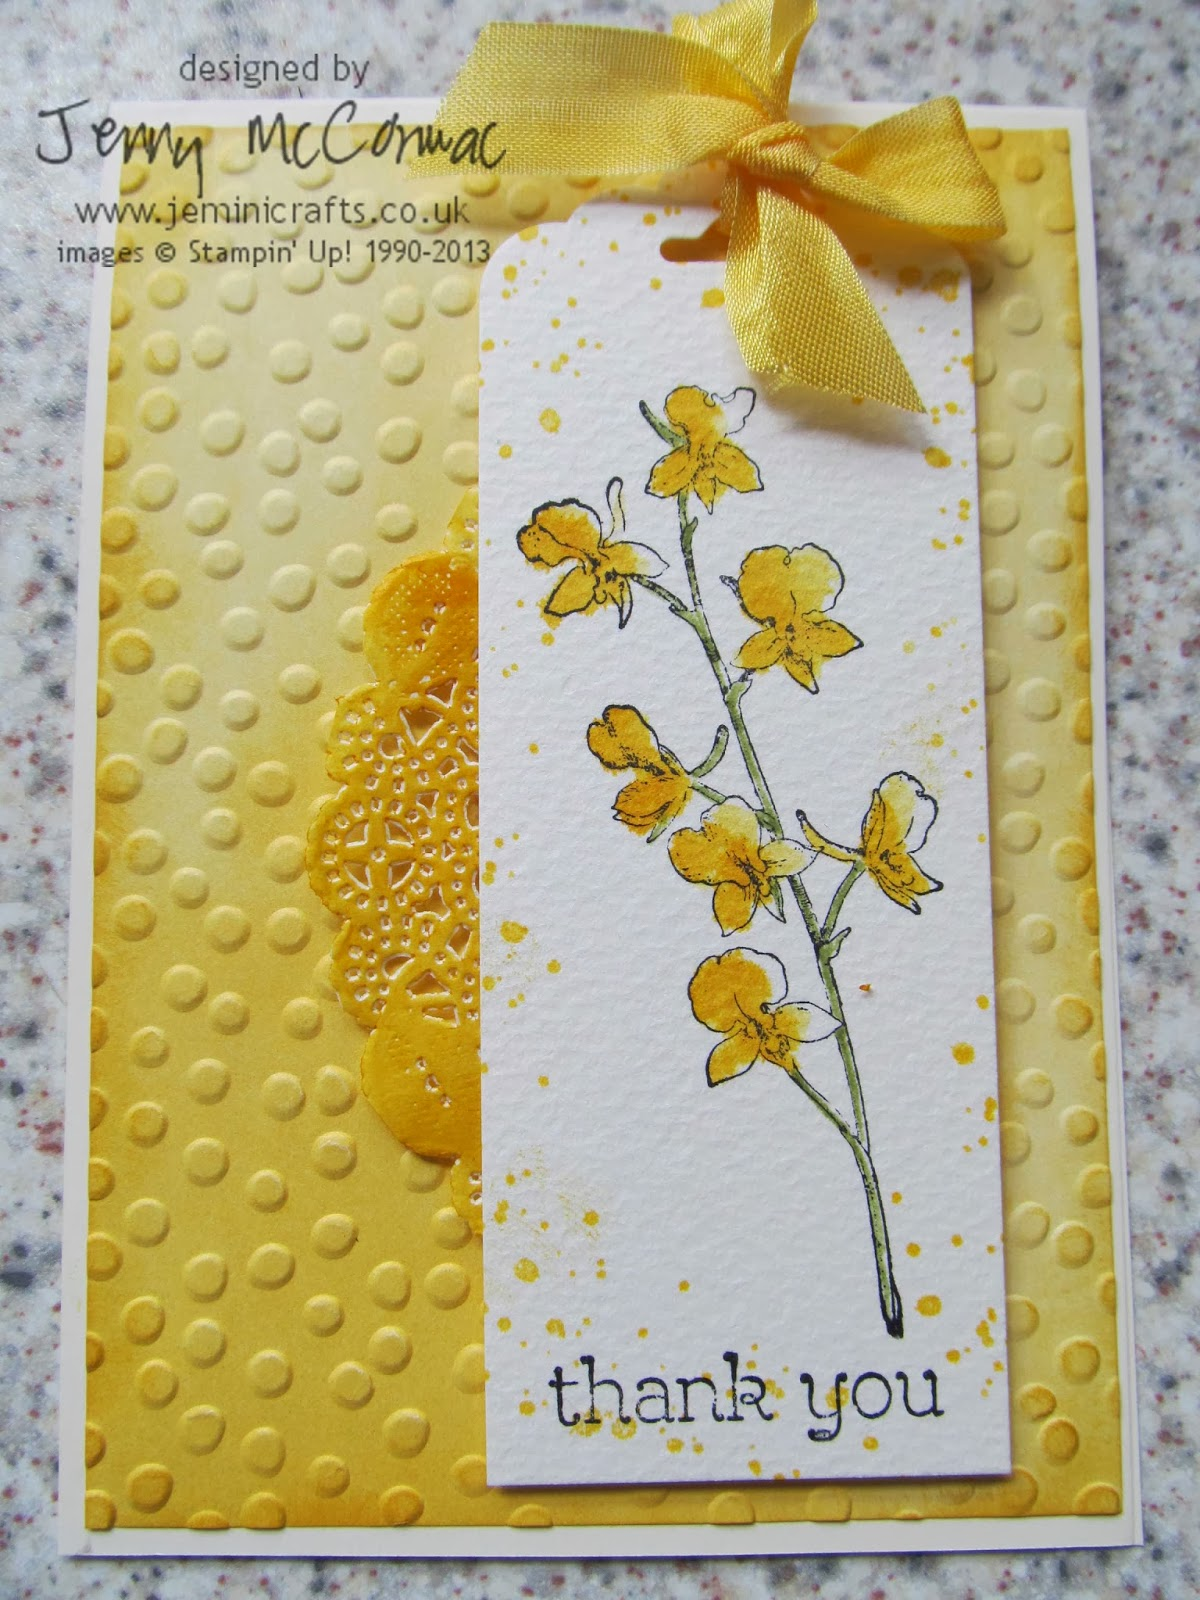 Stampin Up Watercolour Cards 2014 Jemini Crafts